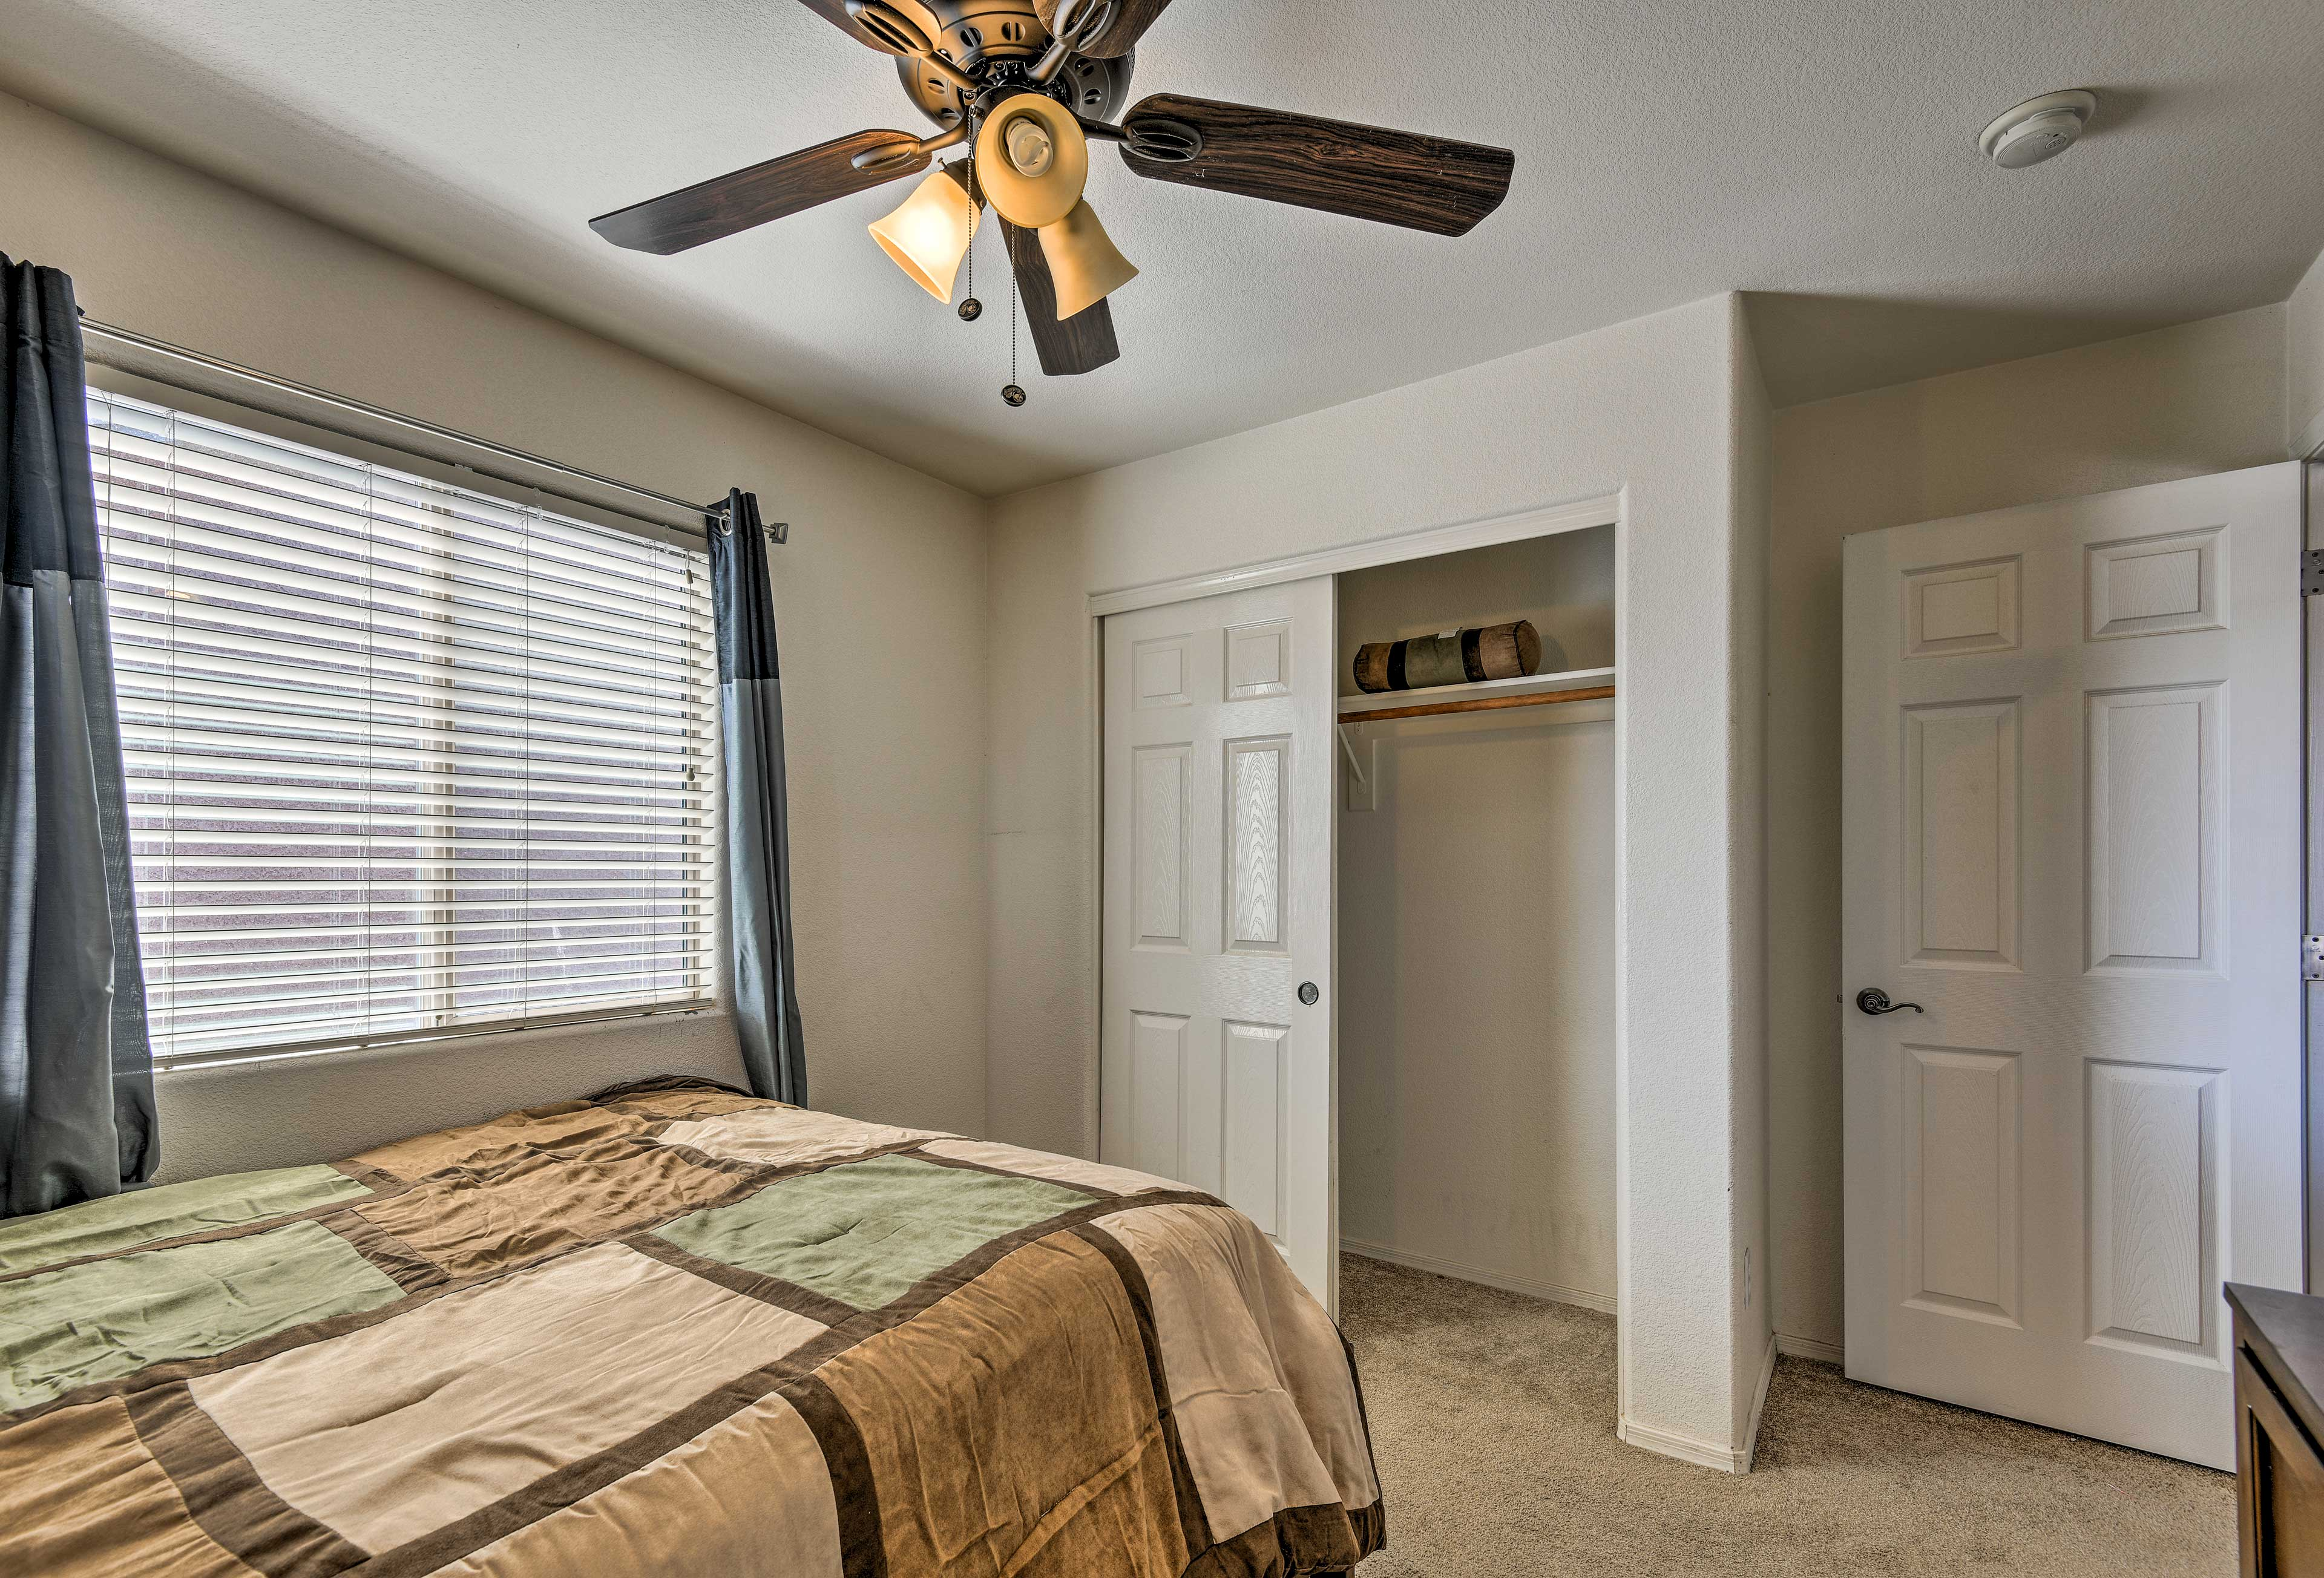 Turn on the AC and ceiling fan for those extra balmy Arizona nights!